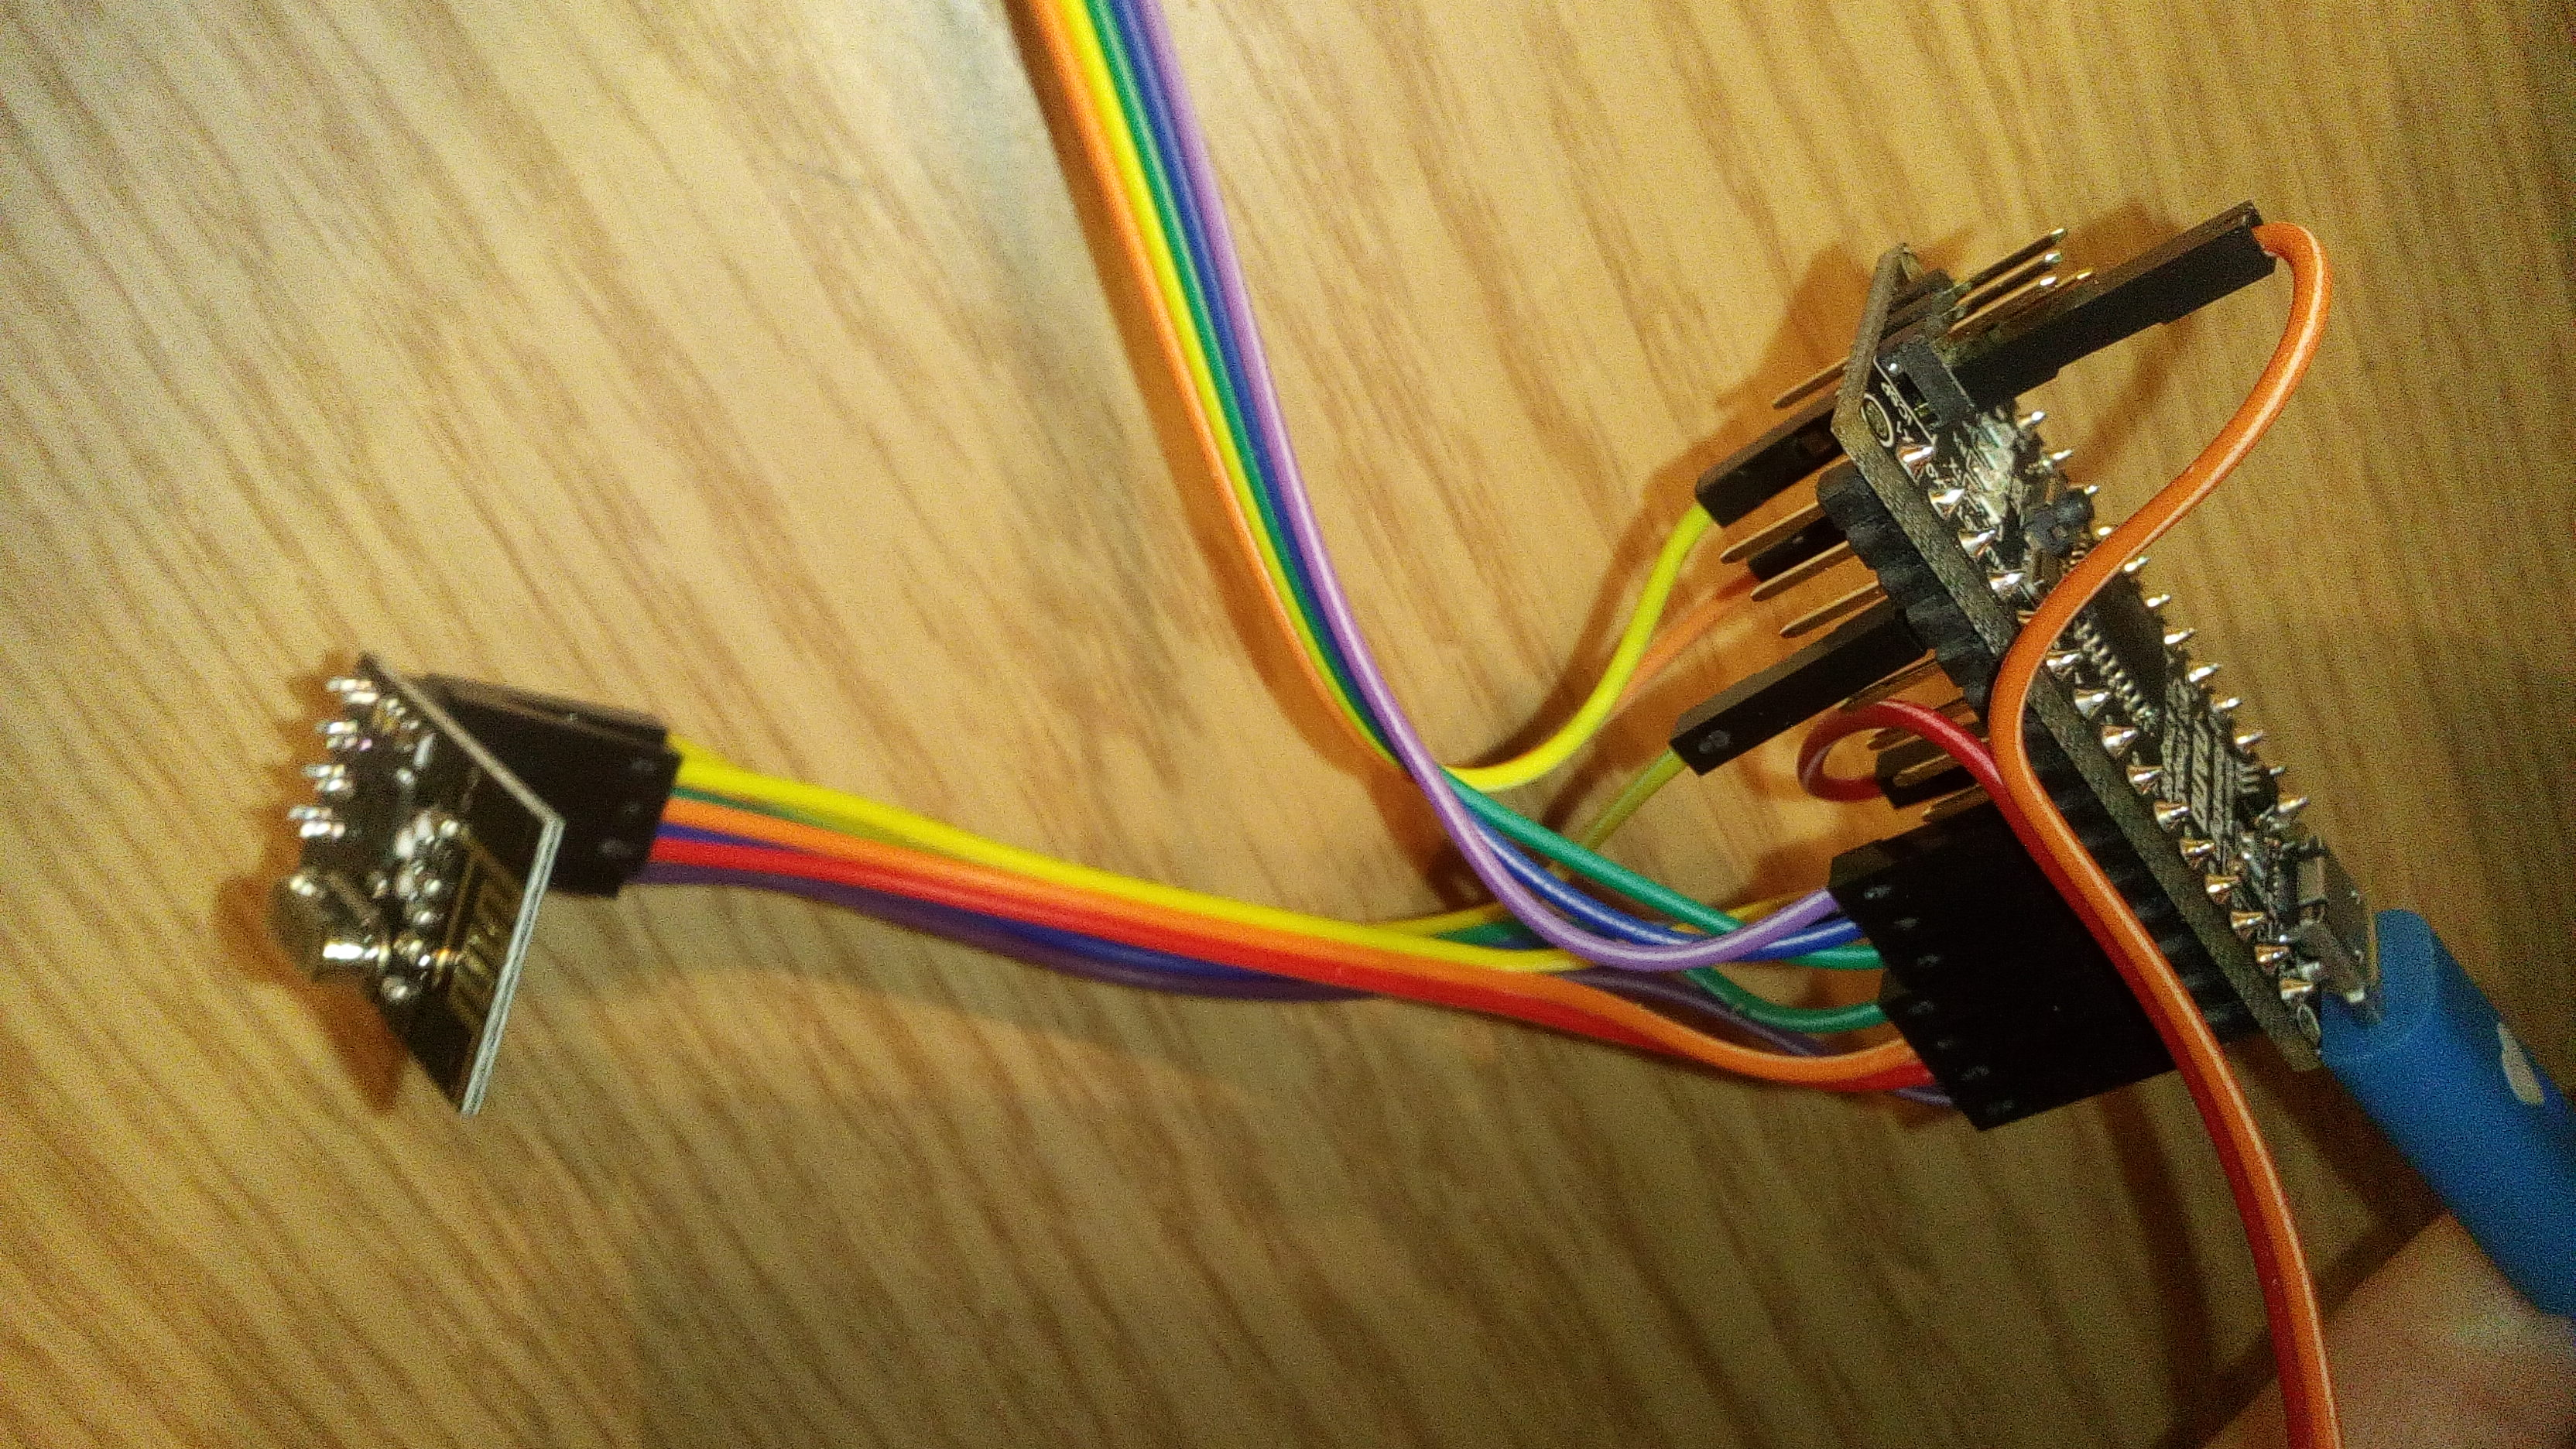 Picture of Wiring the Receiver